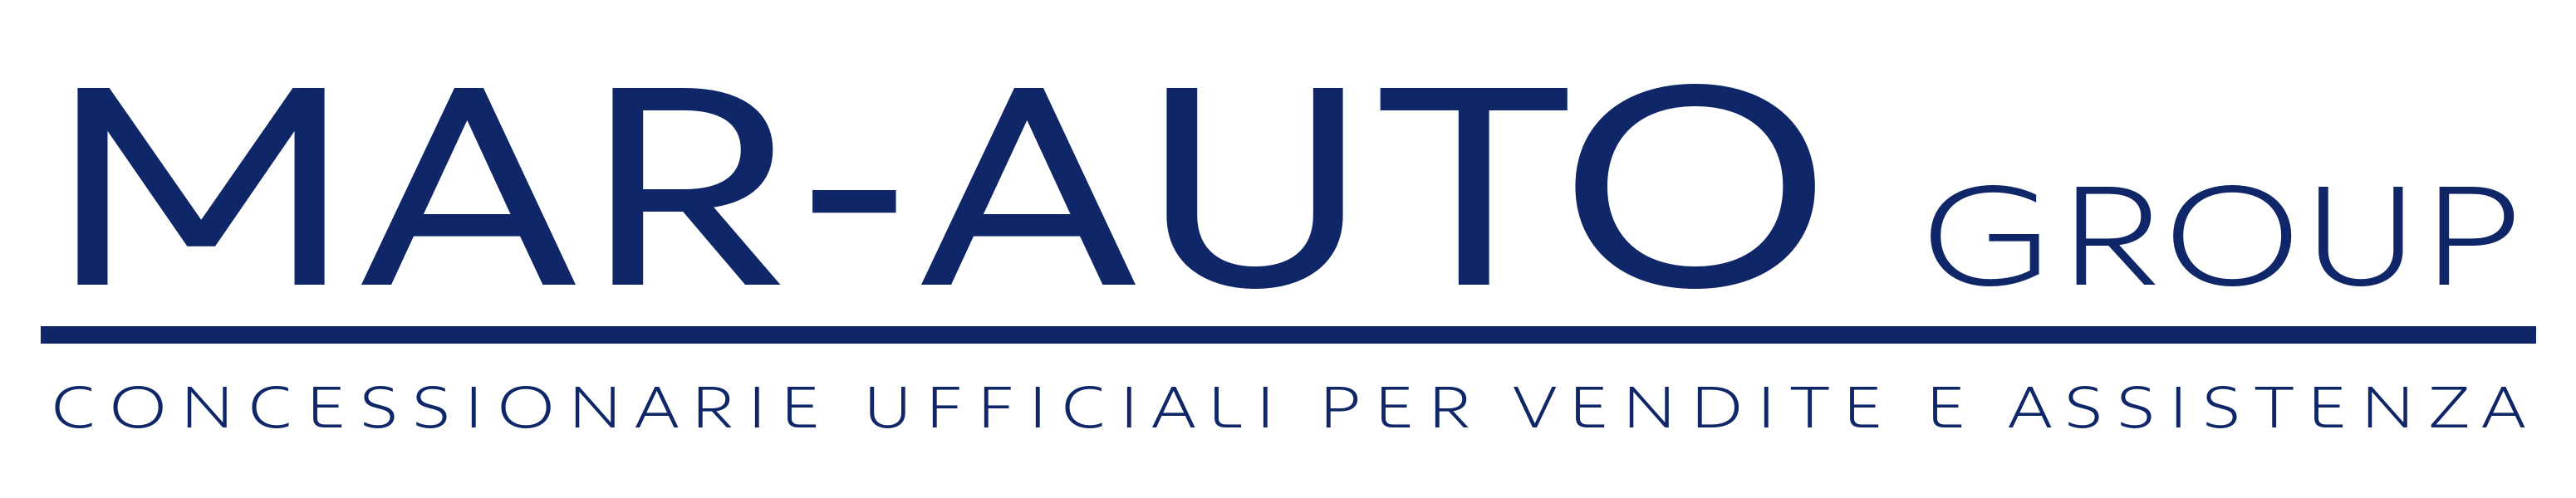 MAR-AUTO Group